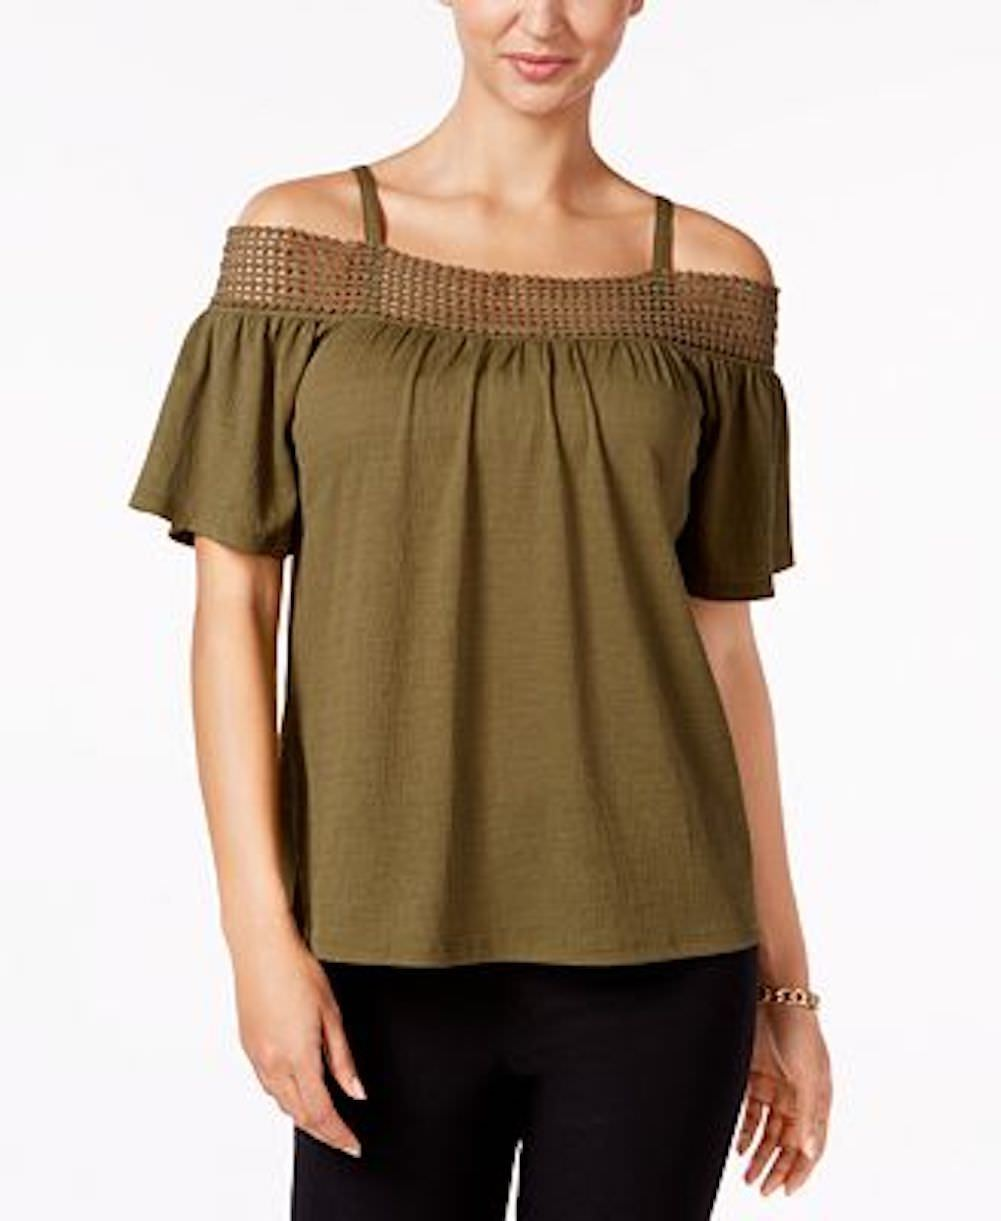 Cable & Gauge Women Stretch Green Cold Shoulder Lace Crochet Trim Blouse Top M